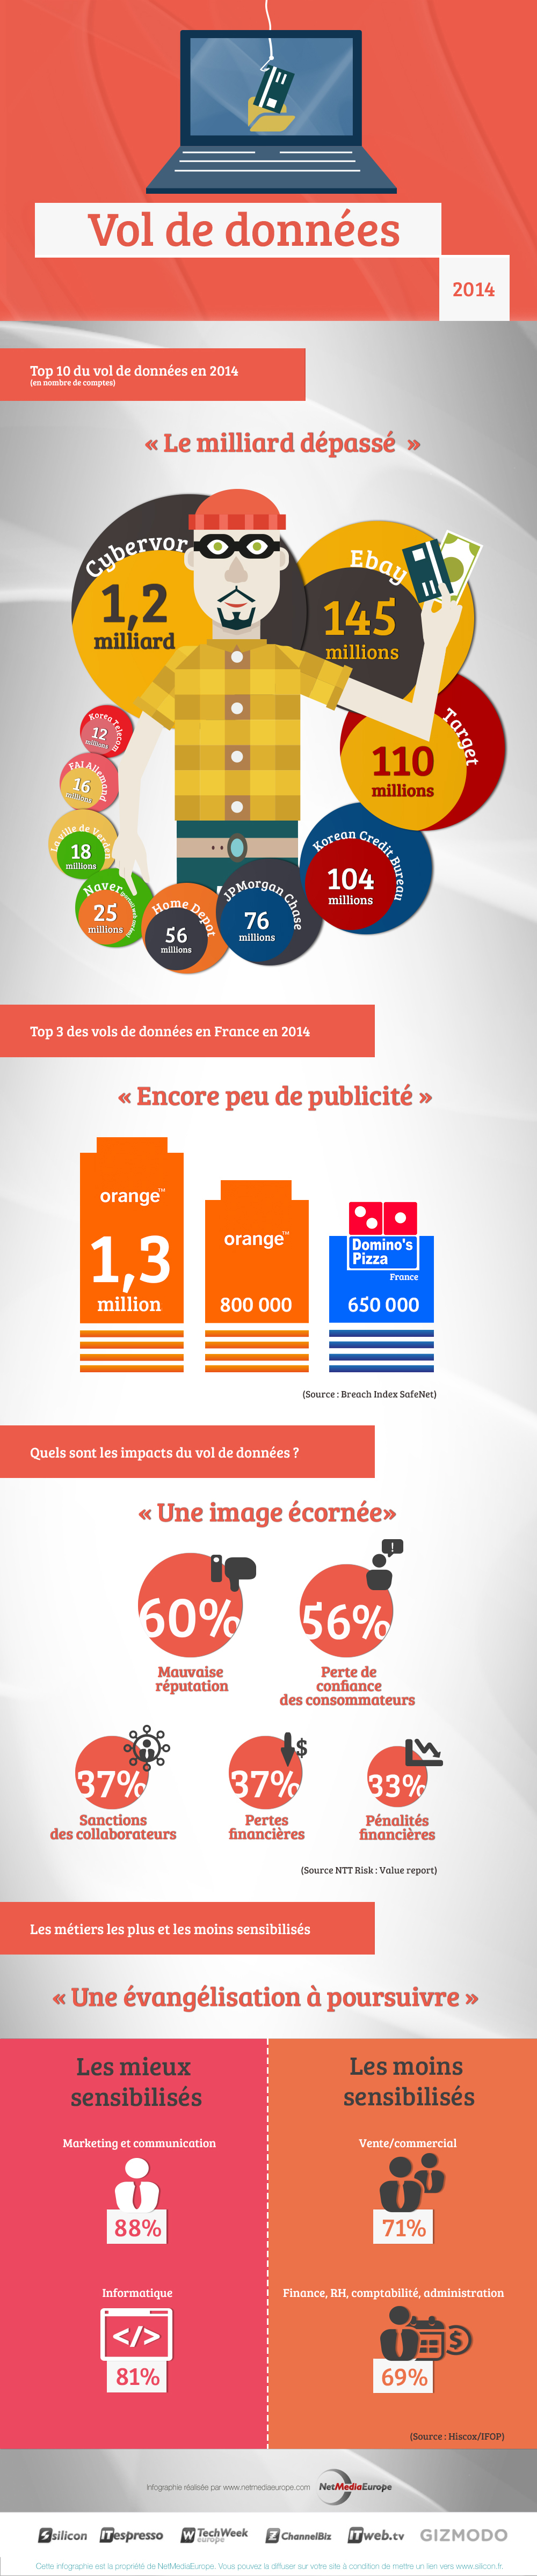 infographie_vol-de-donnees